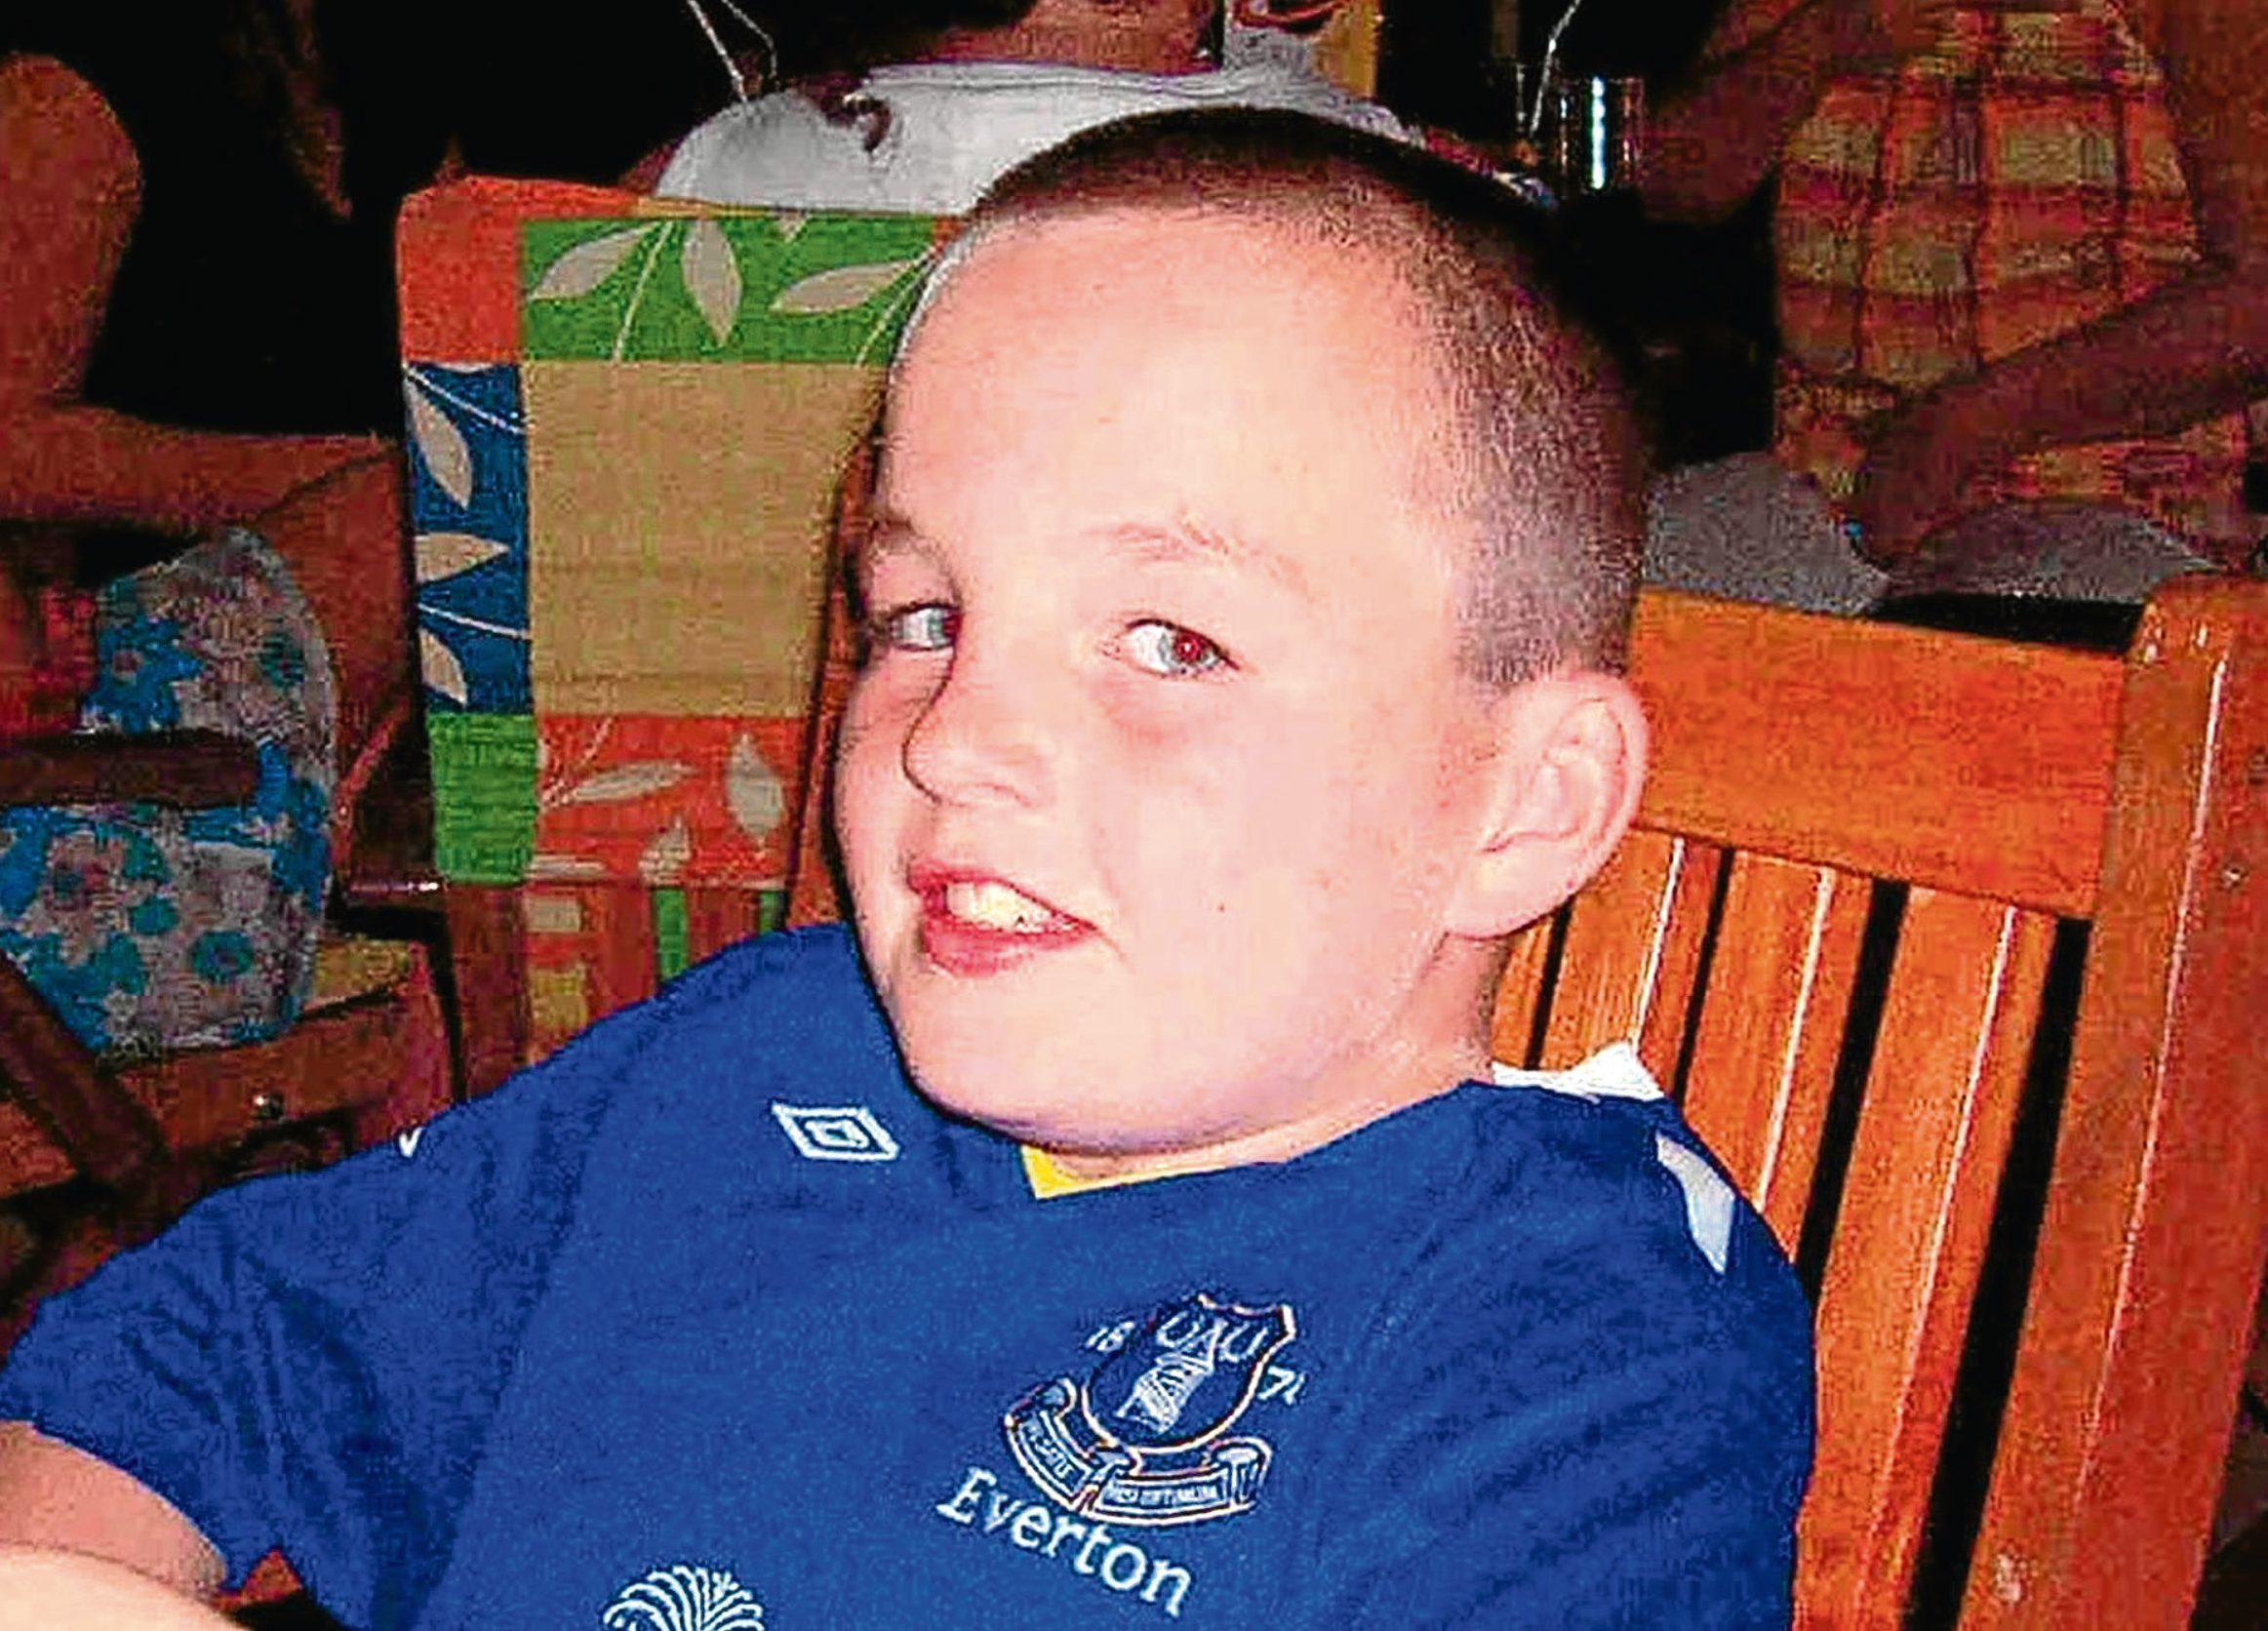 """James Yates and Dean Kelly were part of the """"Croxteth Crew"""" gang which aided Sean Mercer before and after he shot dead Rhys Jones, pictured, as he walked home from football training in Liverpool in 2007"""